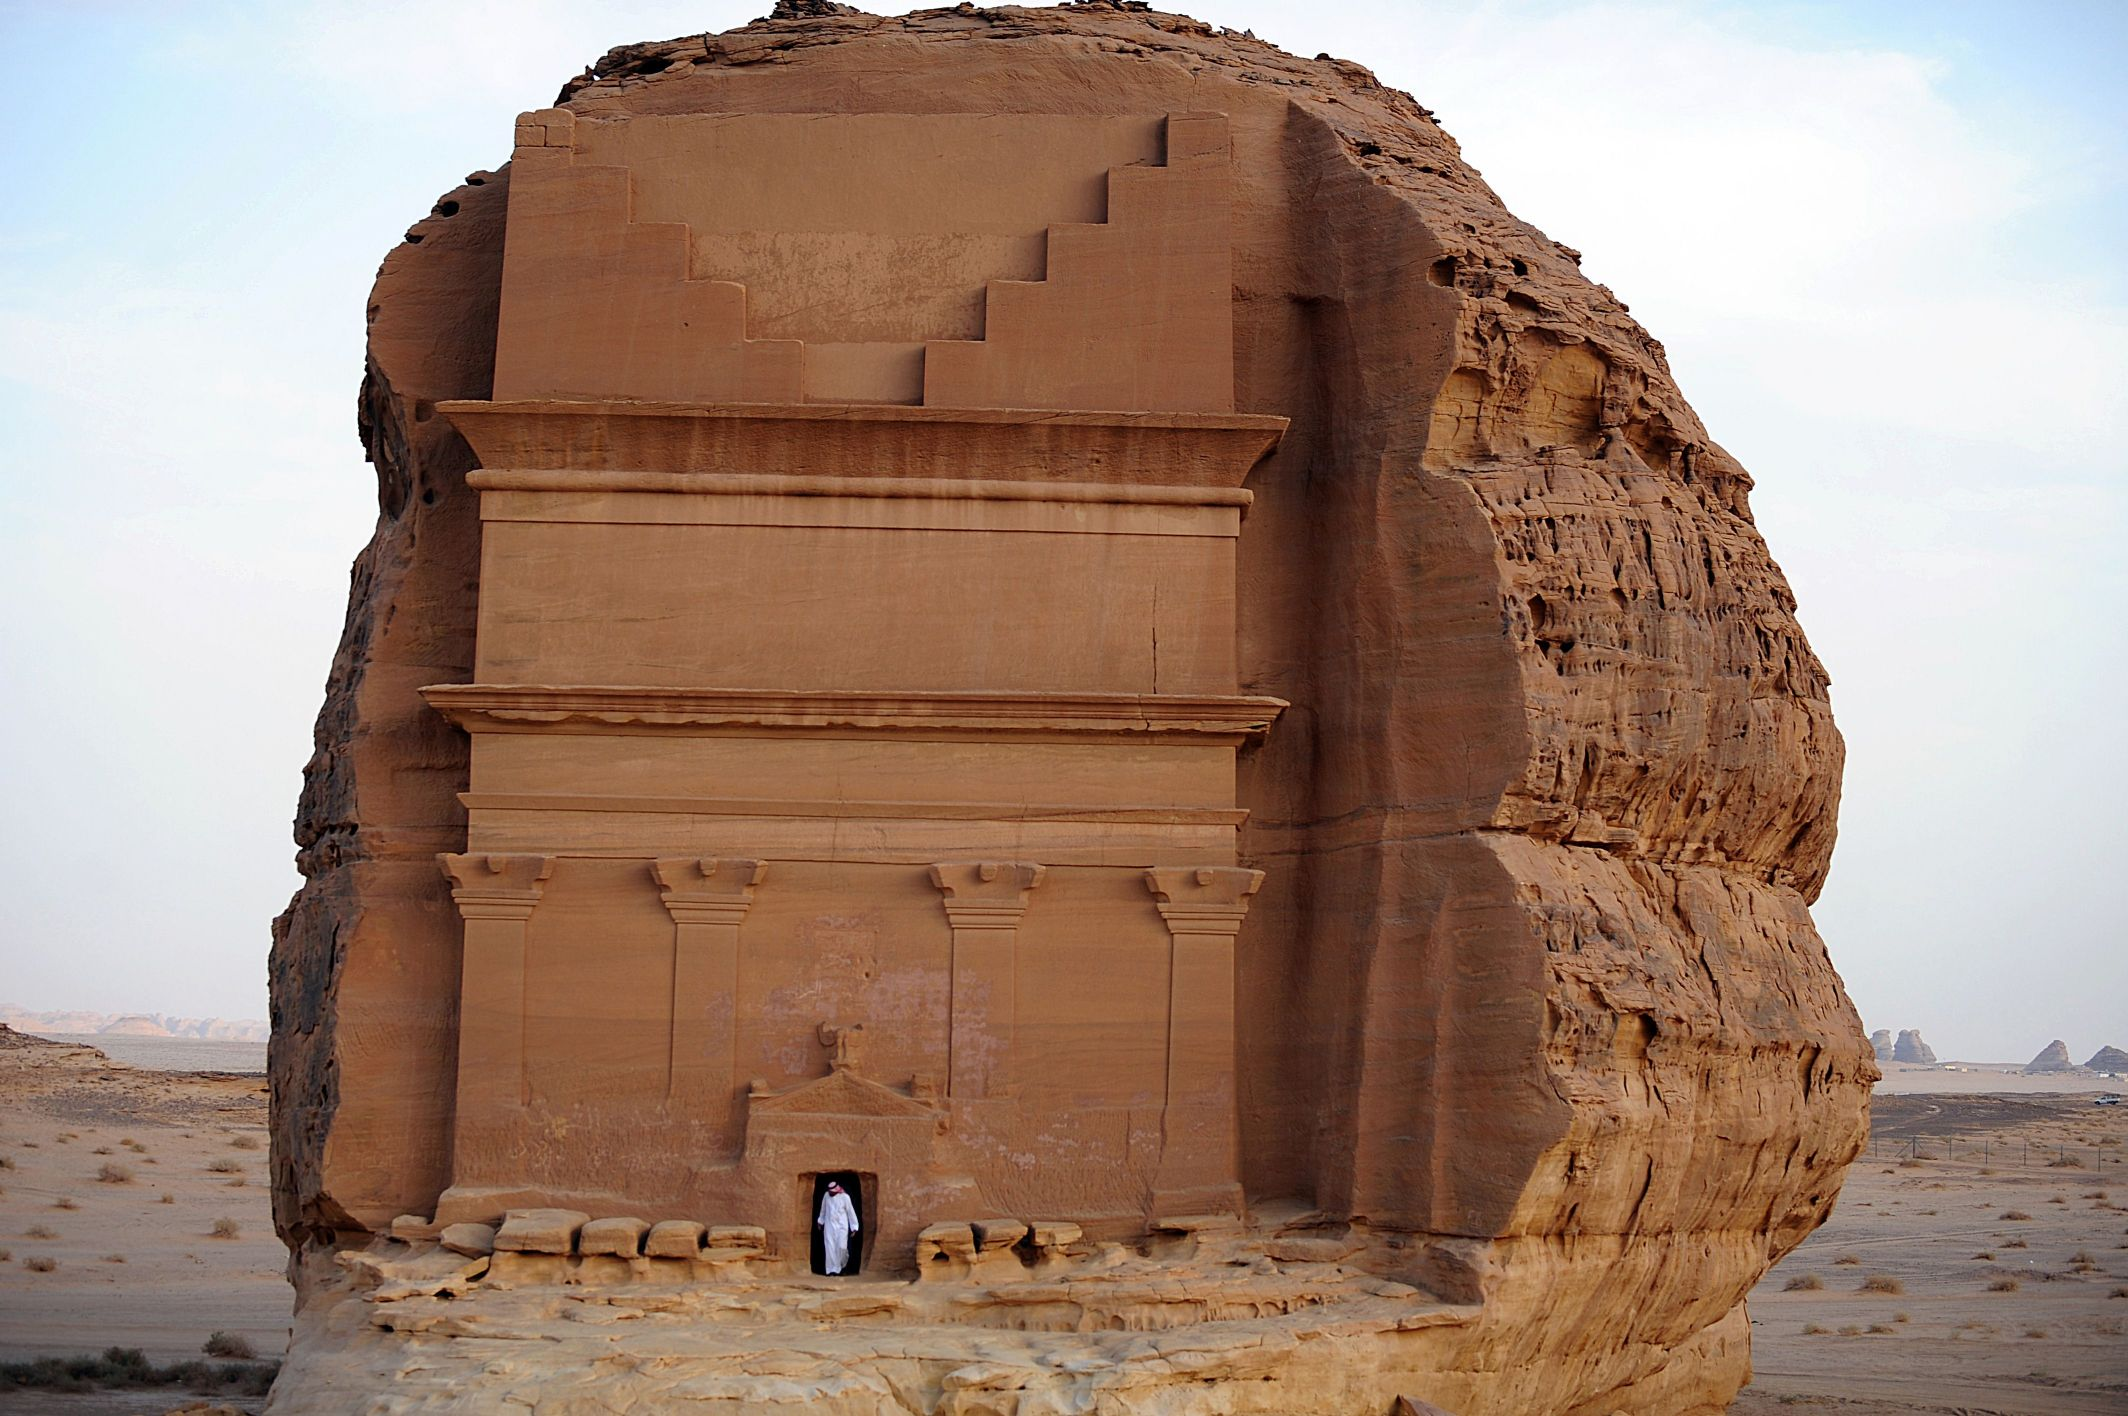 A Saudi man leaves a tomb carved into rose-coloured sandstone mountains in the archaeological site of Al Hijr. (AFP)